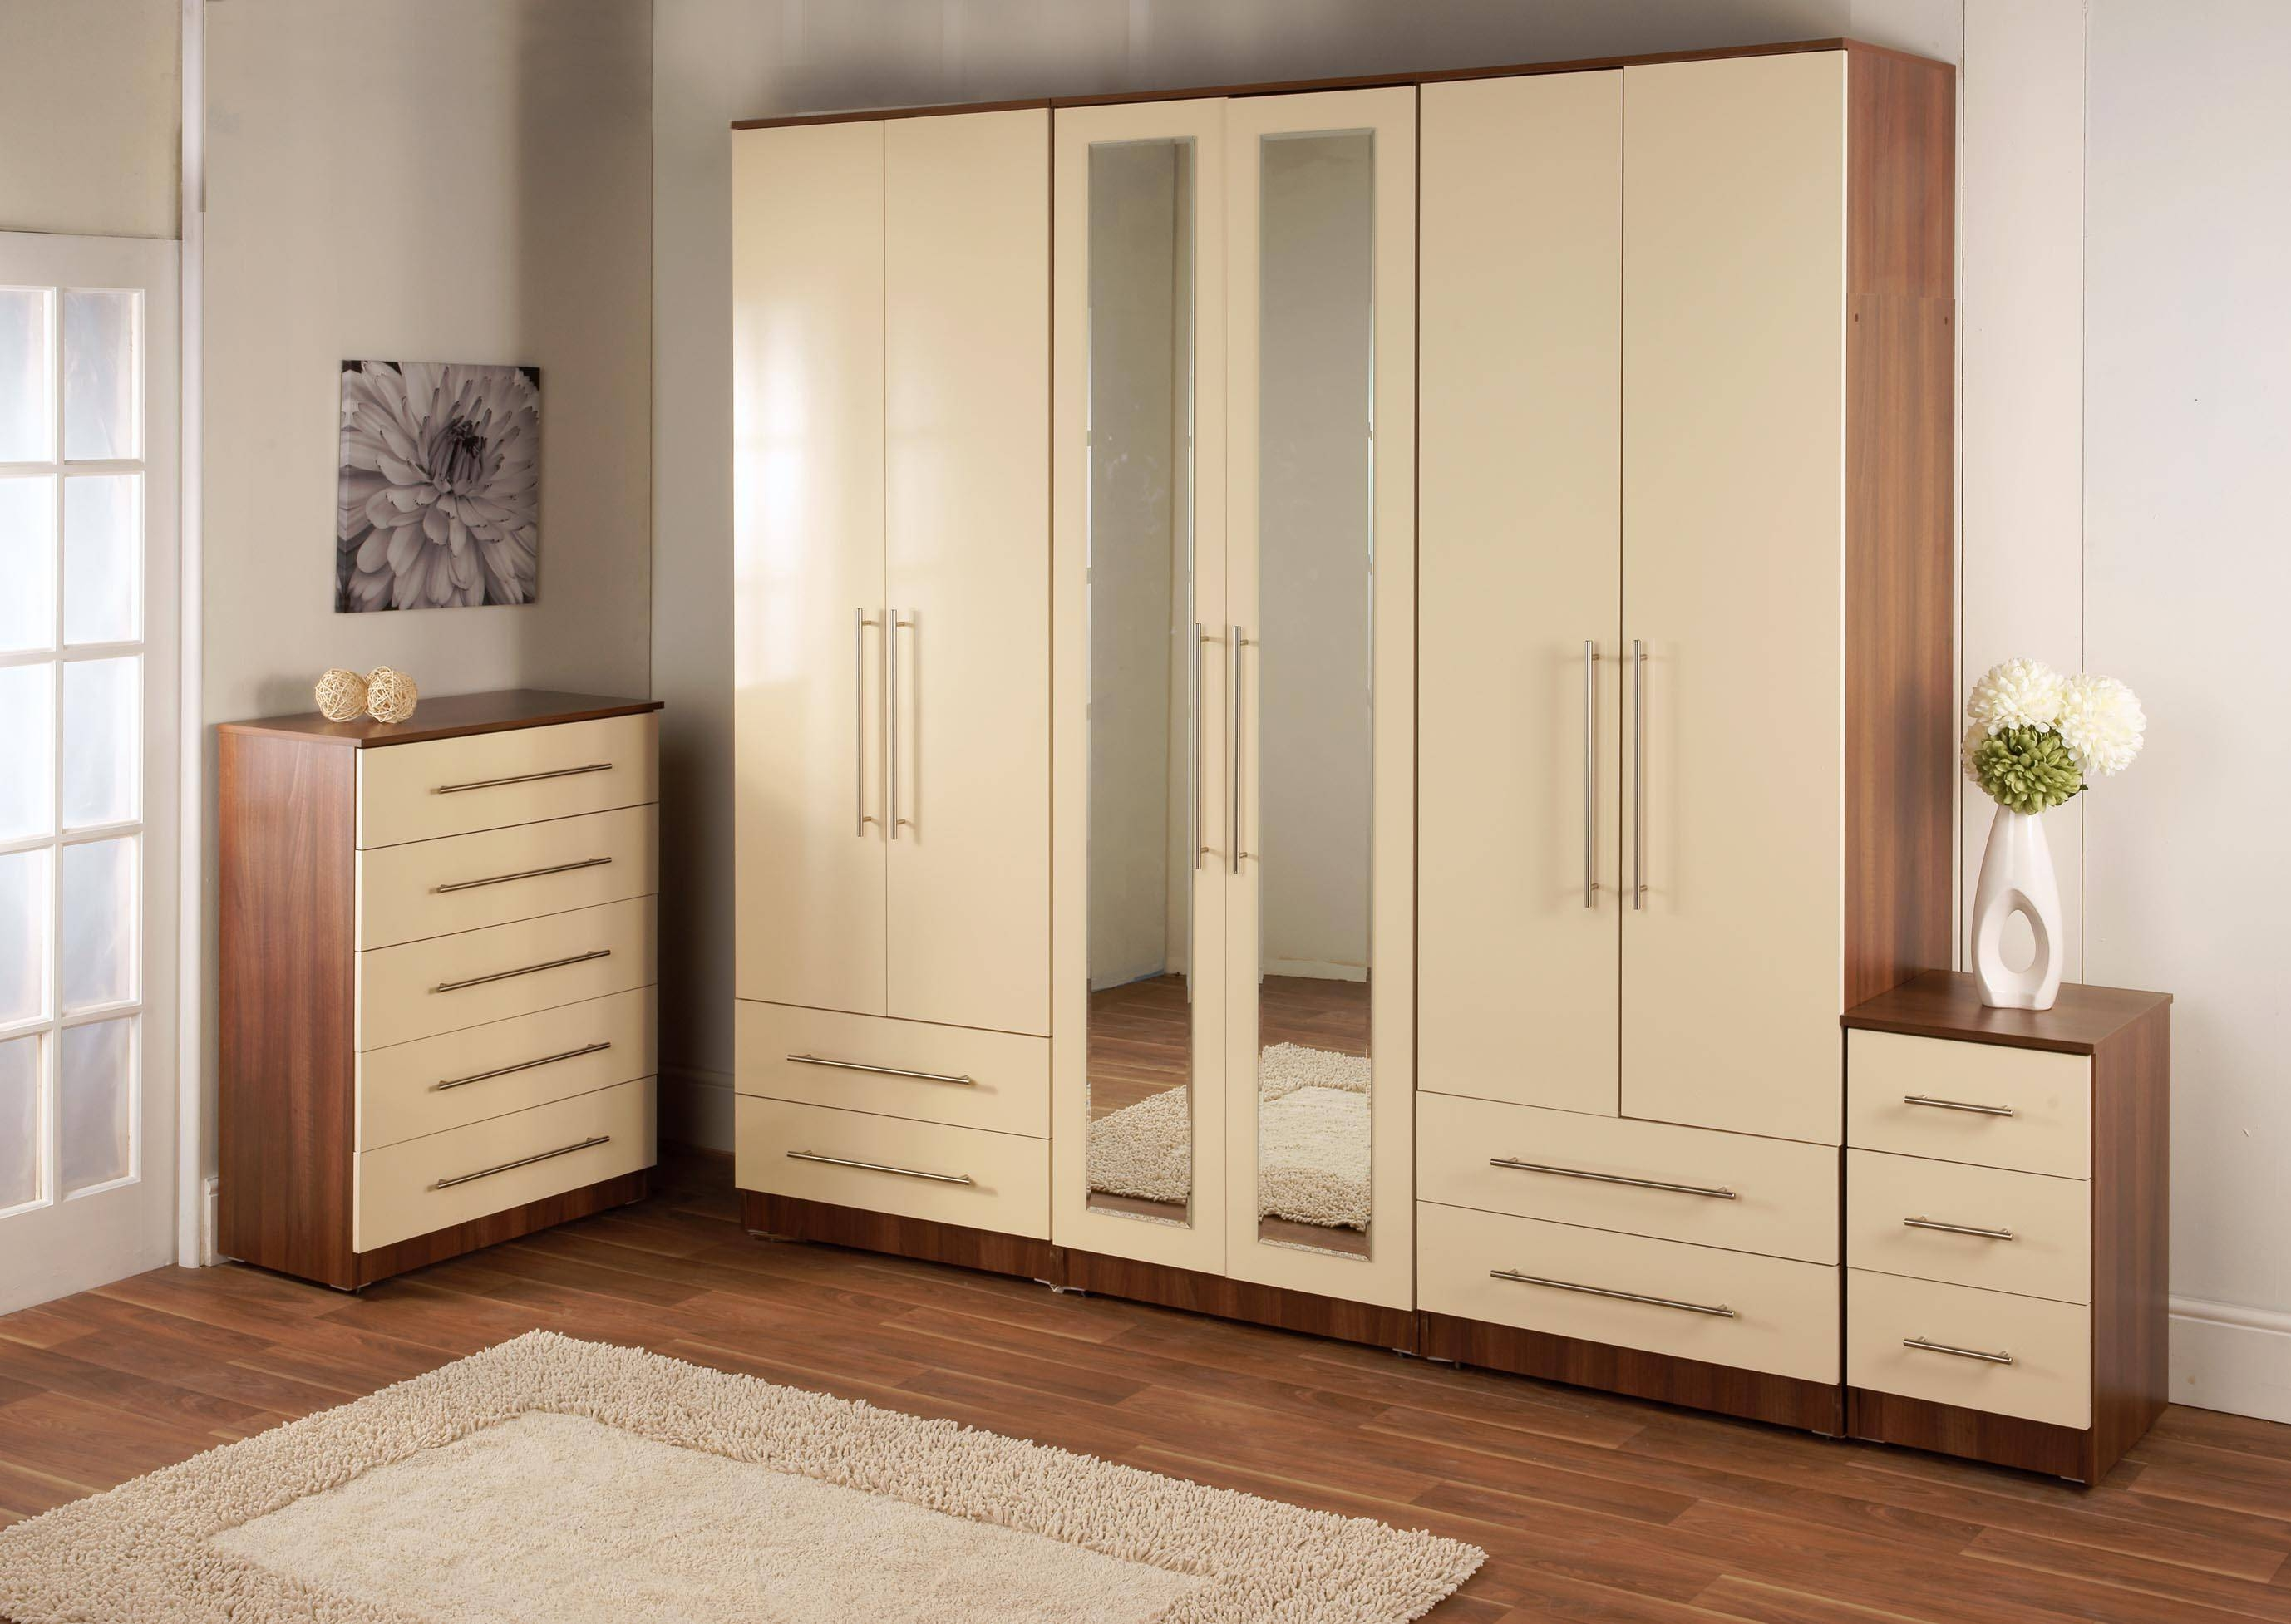 Bedroom : Clothes Boxes For Storage Wardrobe And Chest Of Drawers with Wardrobes Sets (Image 2 of 15)